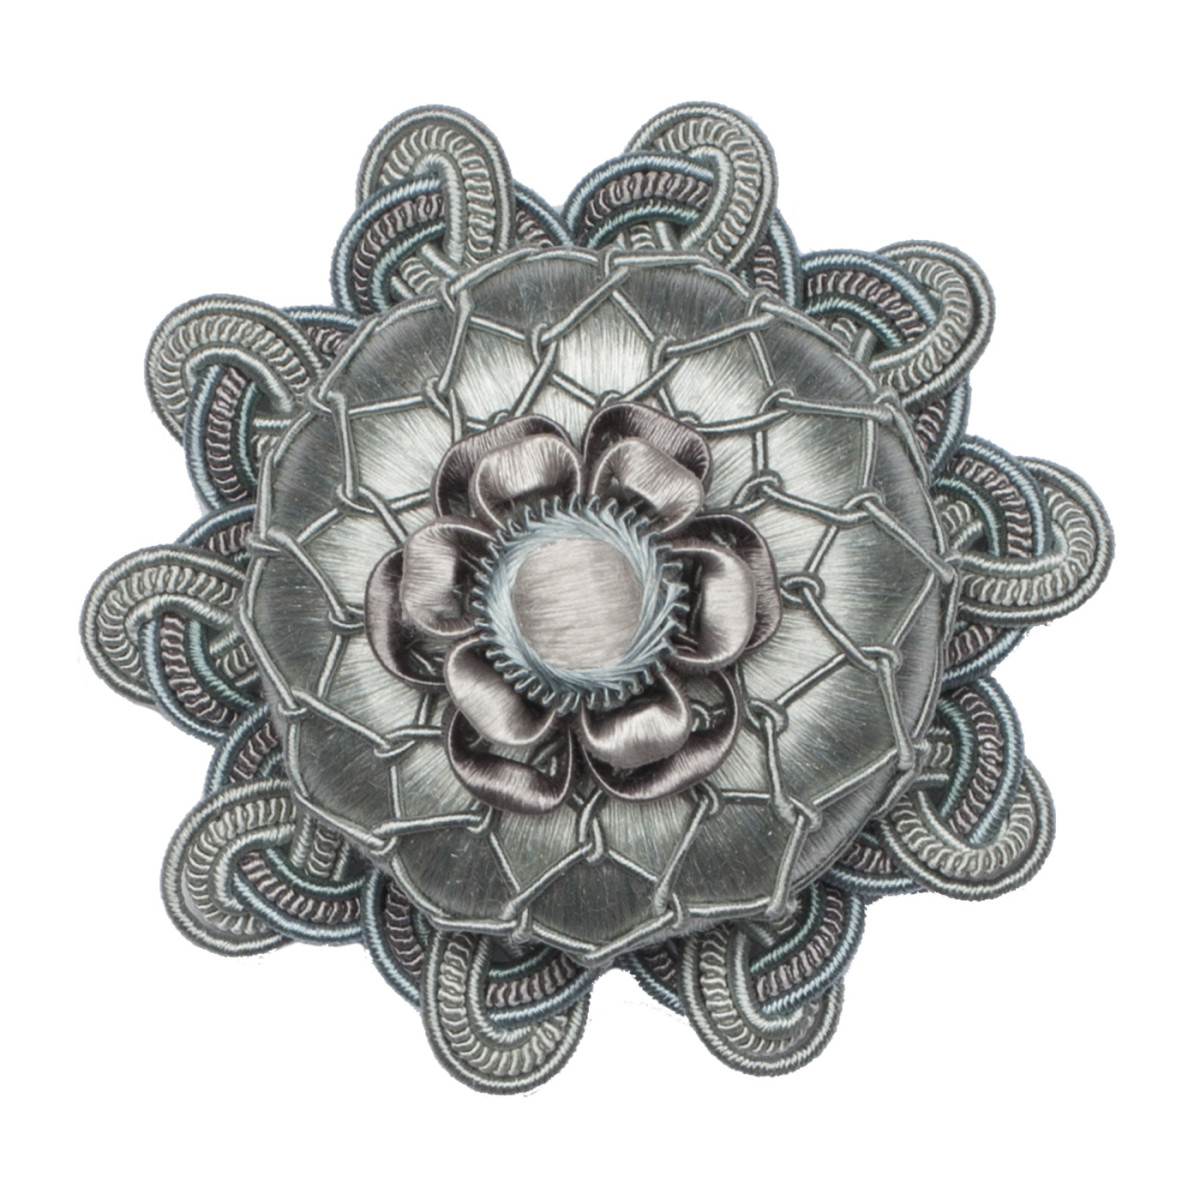 Retro Design T/ürschloss-Rosette Rosette in Nickel matt Antikas antike und neue T/üren